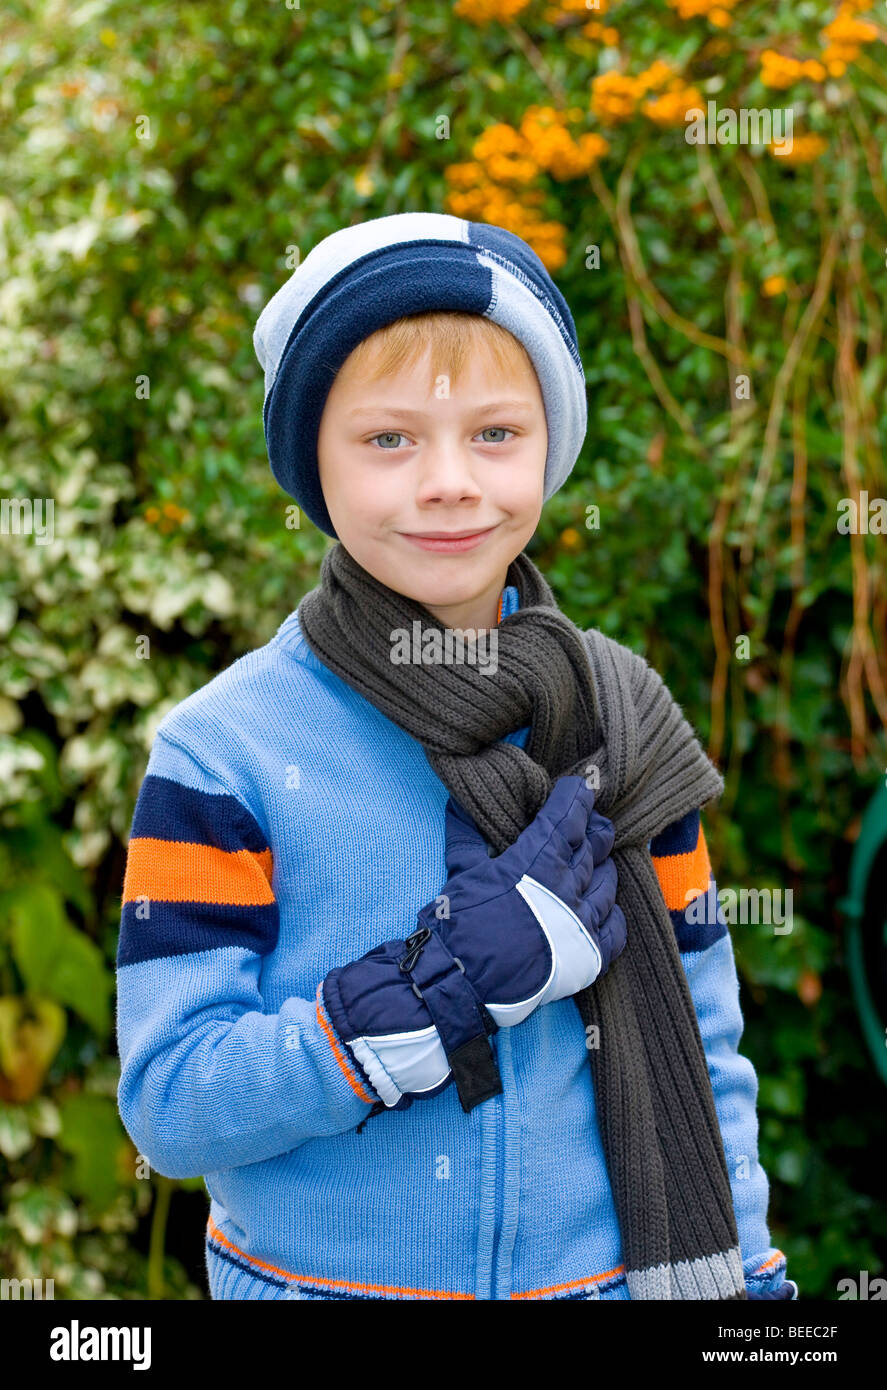 6-year-old boy wearing a hat, scarf and gloves - Stock Image